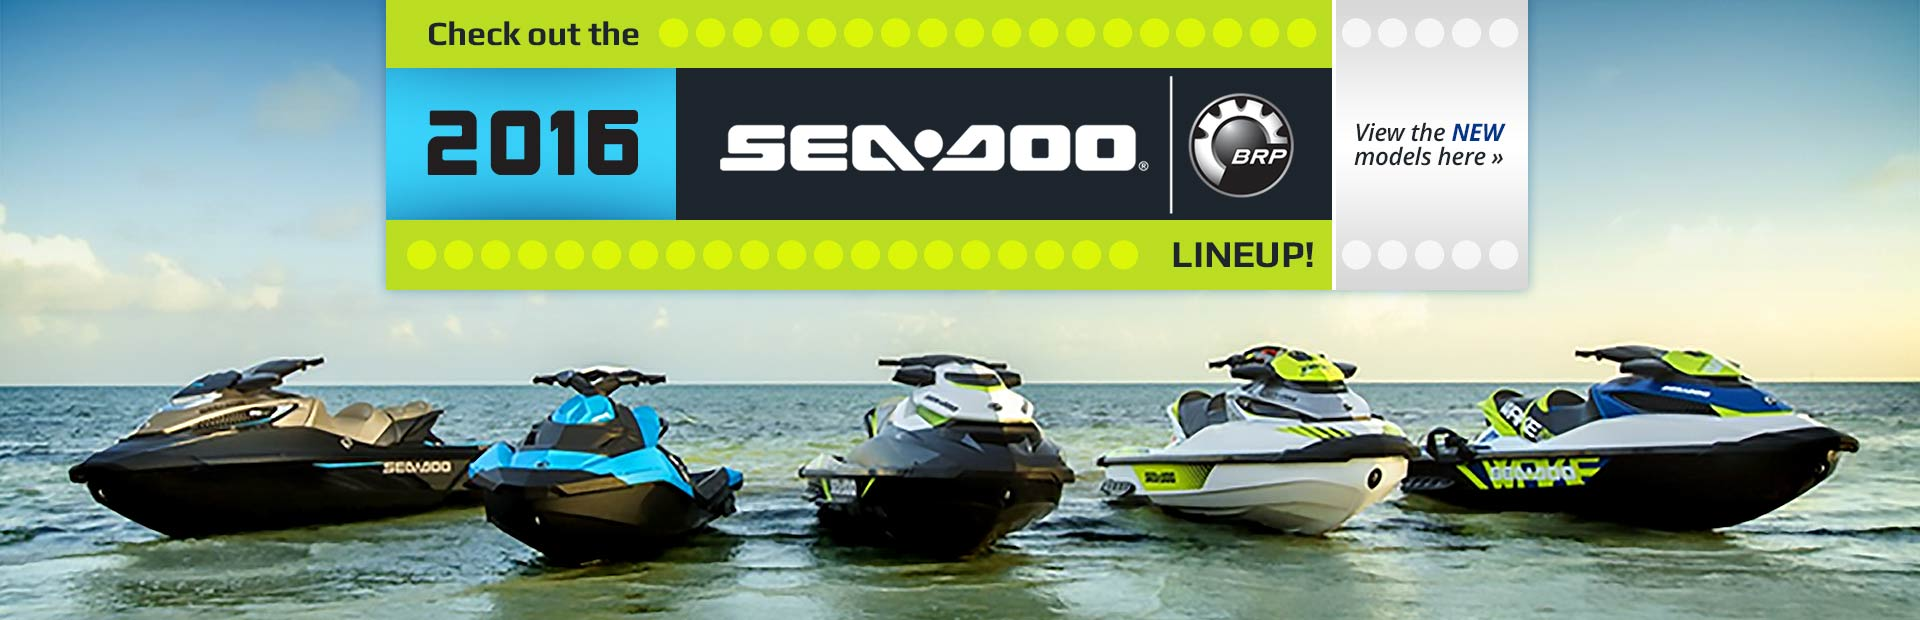 2016 Sea-Doo Lineup: Click here to view the models.